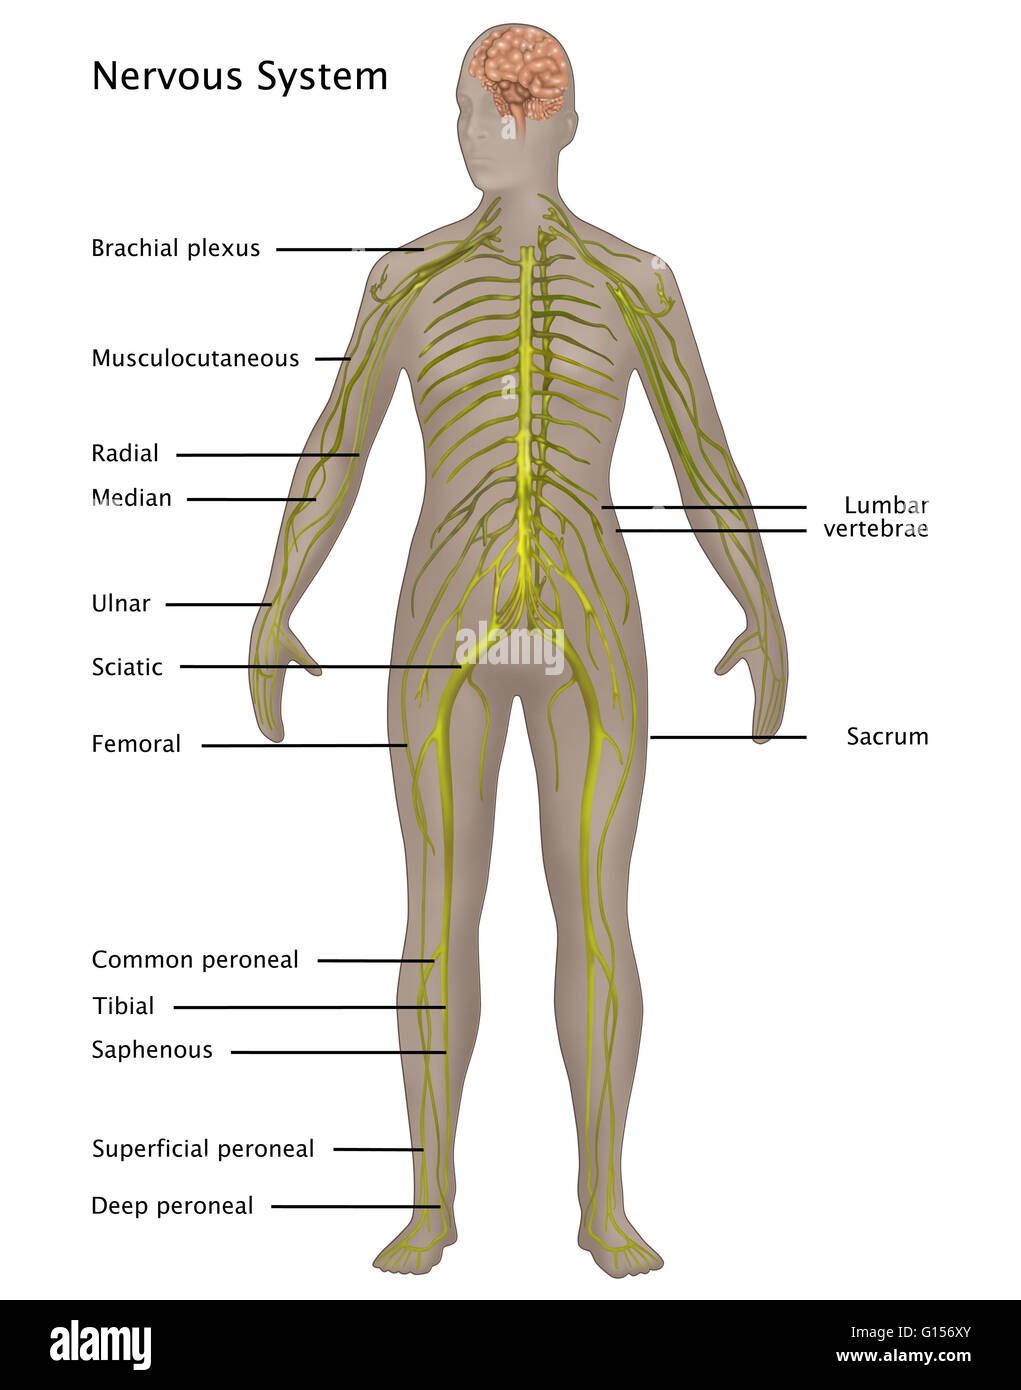 diagram of the nervous system labeled